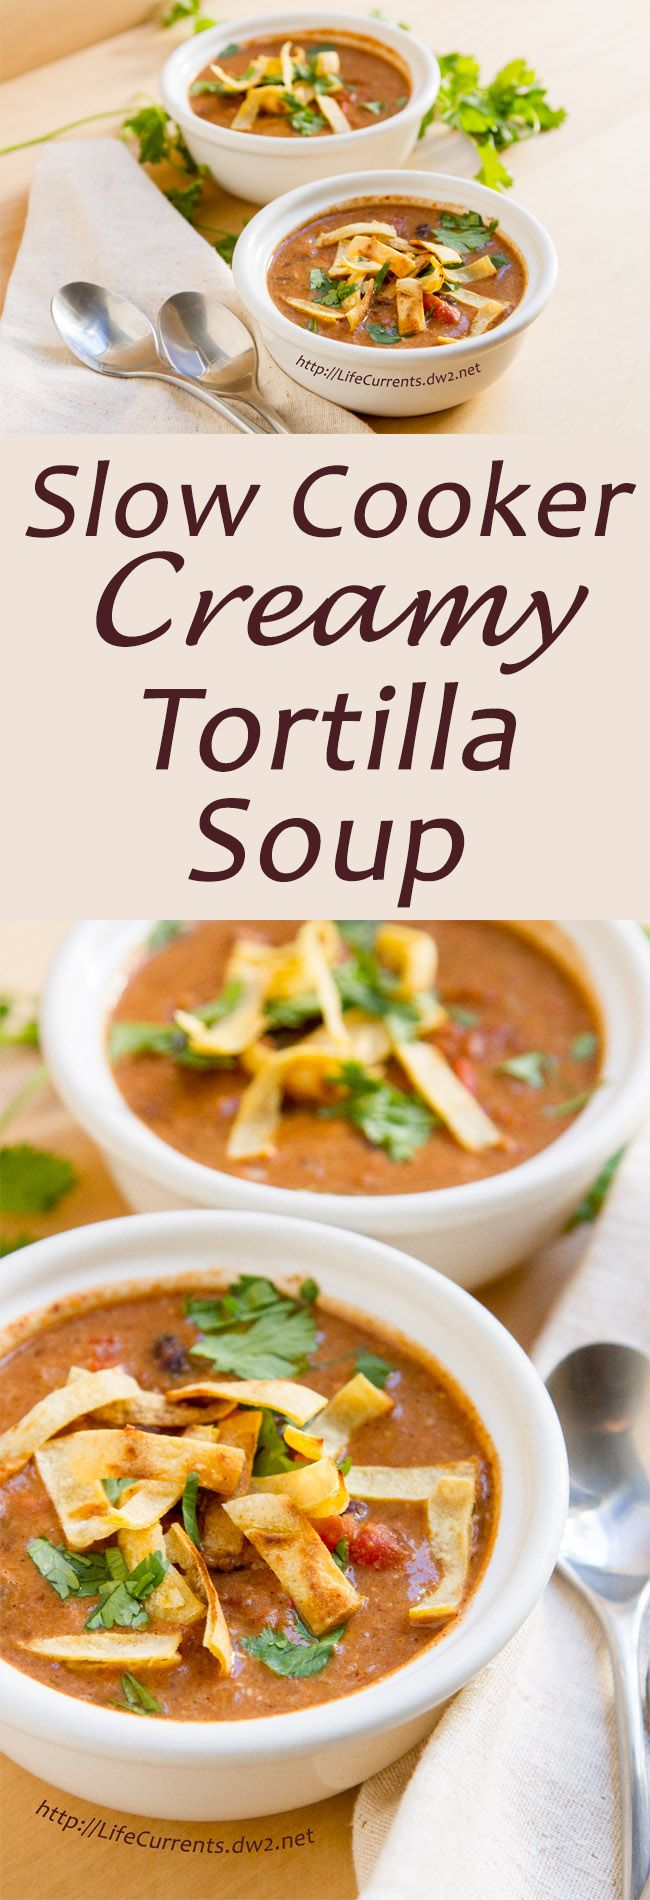 Slow Cooker Creamy Tortilla Soup is a great comforting soup. And, it's awesome that you can simply throw all the ingredients in the crock pot (slow cooker) and get a wholesome and yummy dinner!